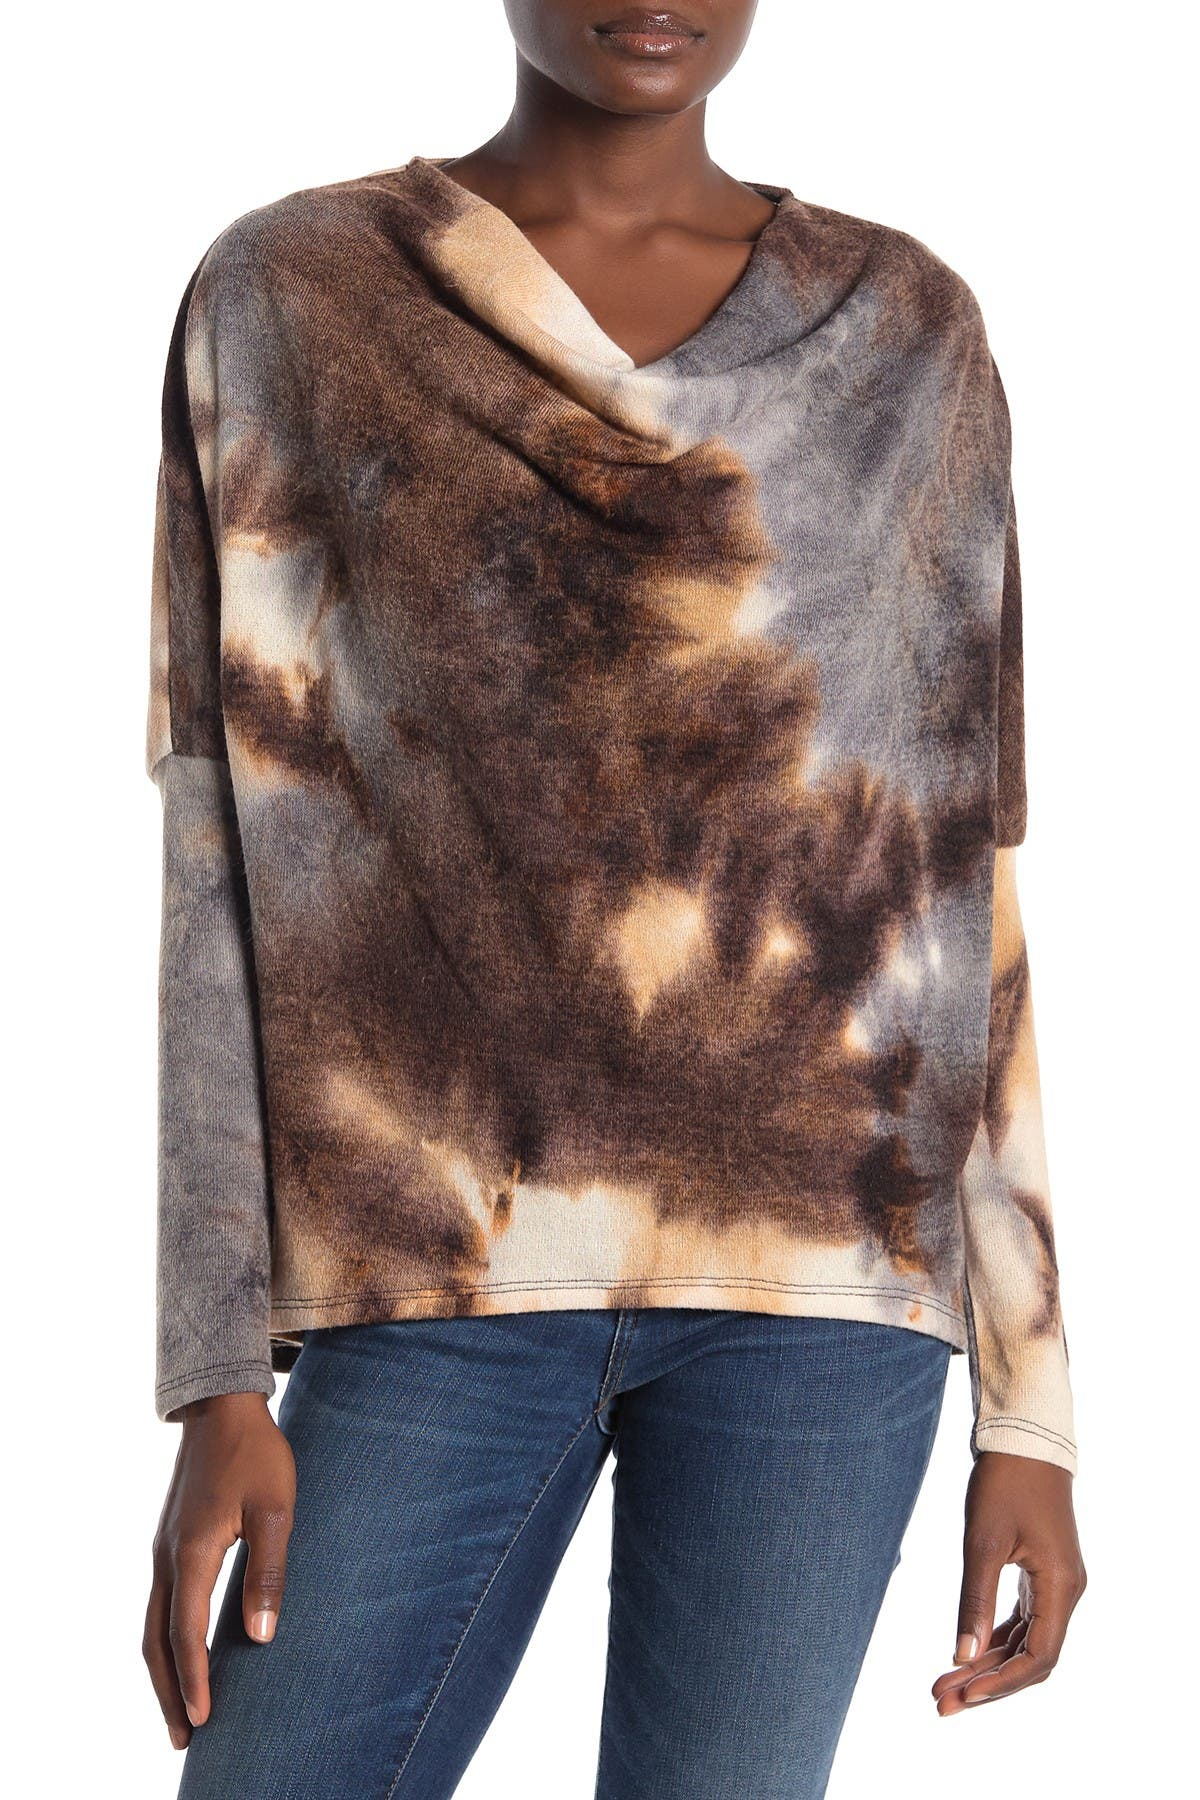 Image of Everleigh Cowl Neck Tie Dye Pullover